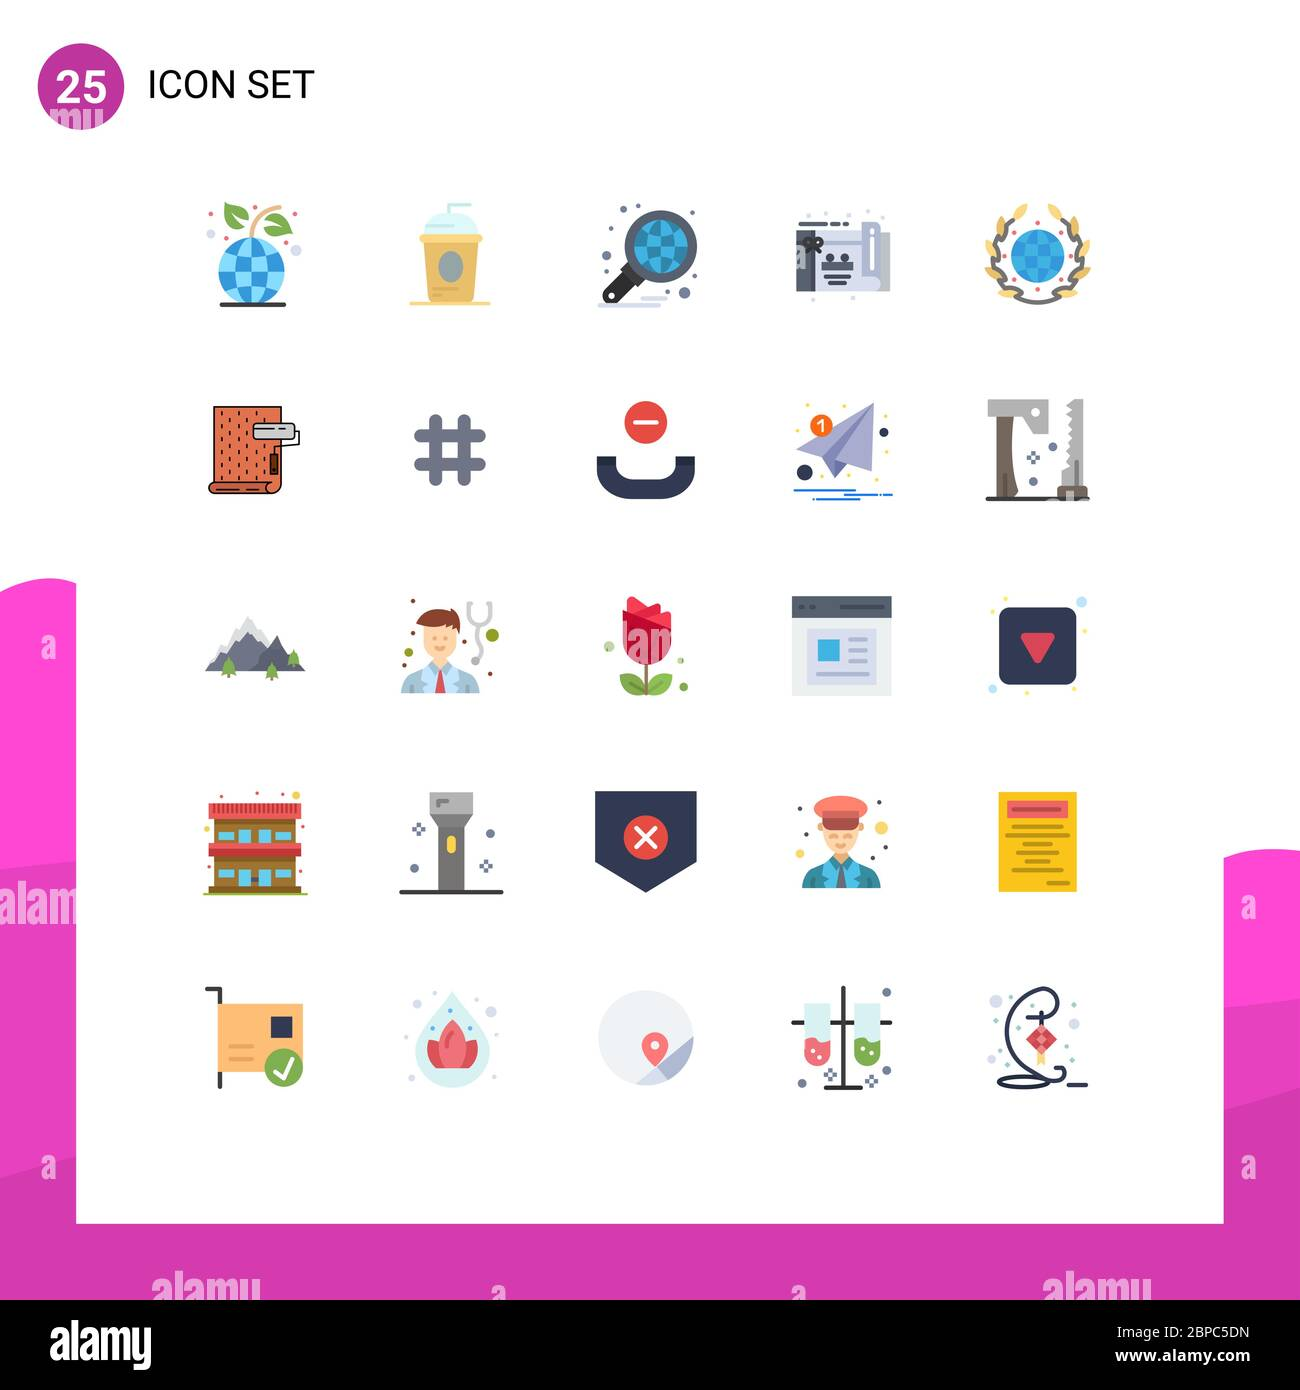 Flat Color Pack of 25 Universal Symbols of earth, party, independece, birthday, graph Editable Vector Design Elements Stock Vector